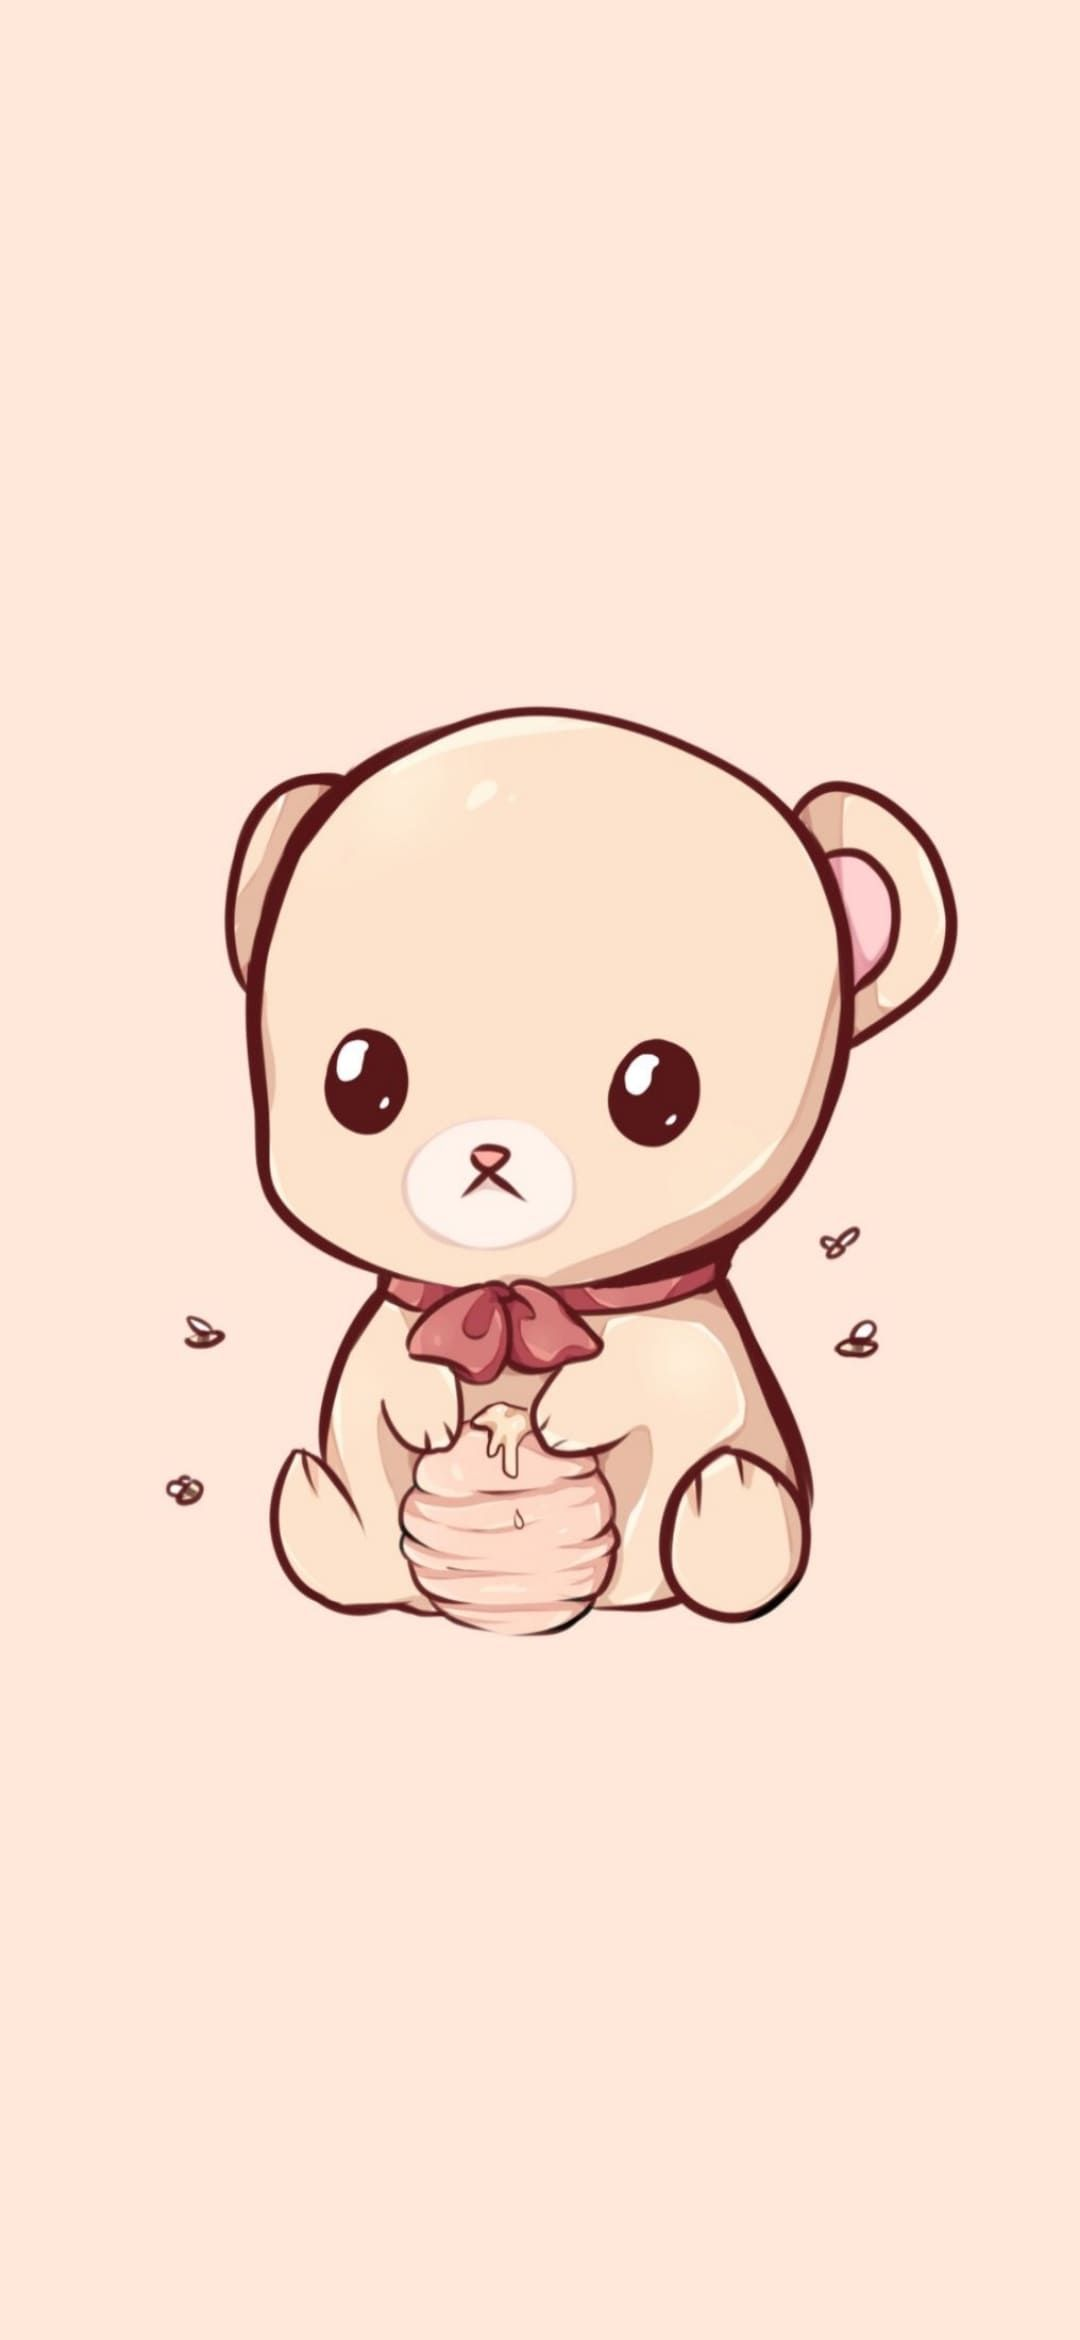 Cute Wallpaper For Iphone 8 Visit To Download Full Size Cute Cartoon Wallpapers Wallpaper Iphone Cute Cute Wallpapers